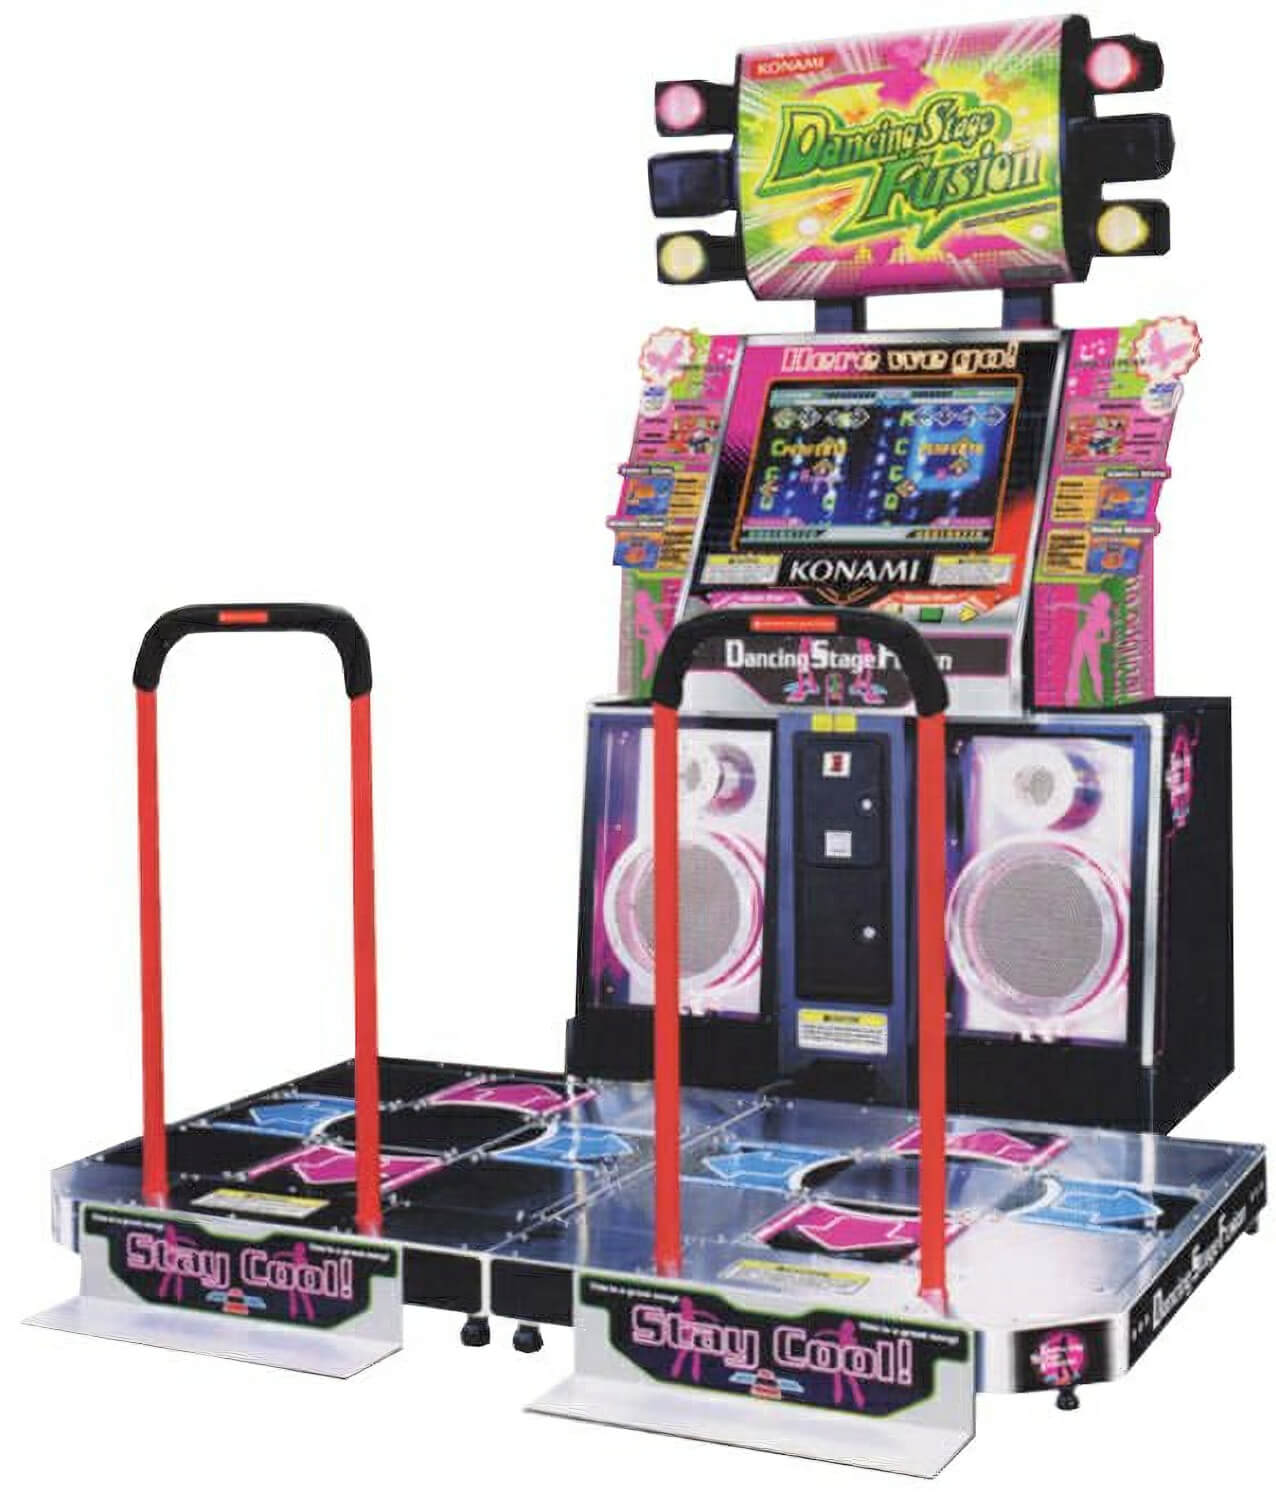 Dance Stage Fusion Arcade Machine Liberty Games